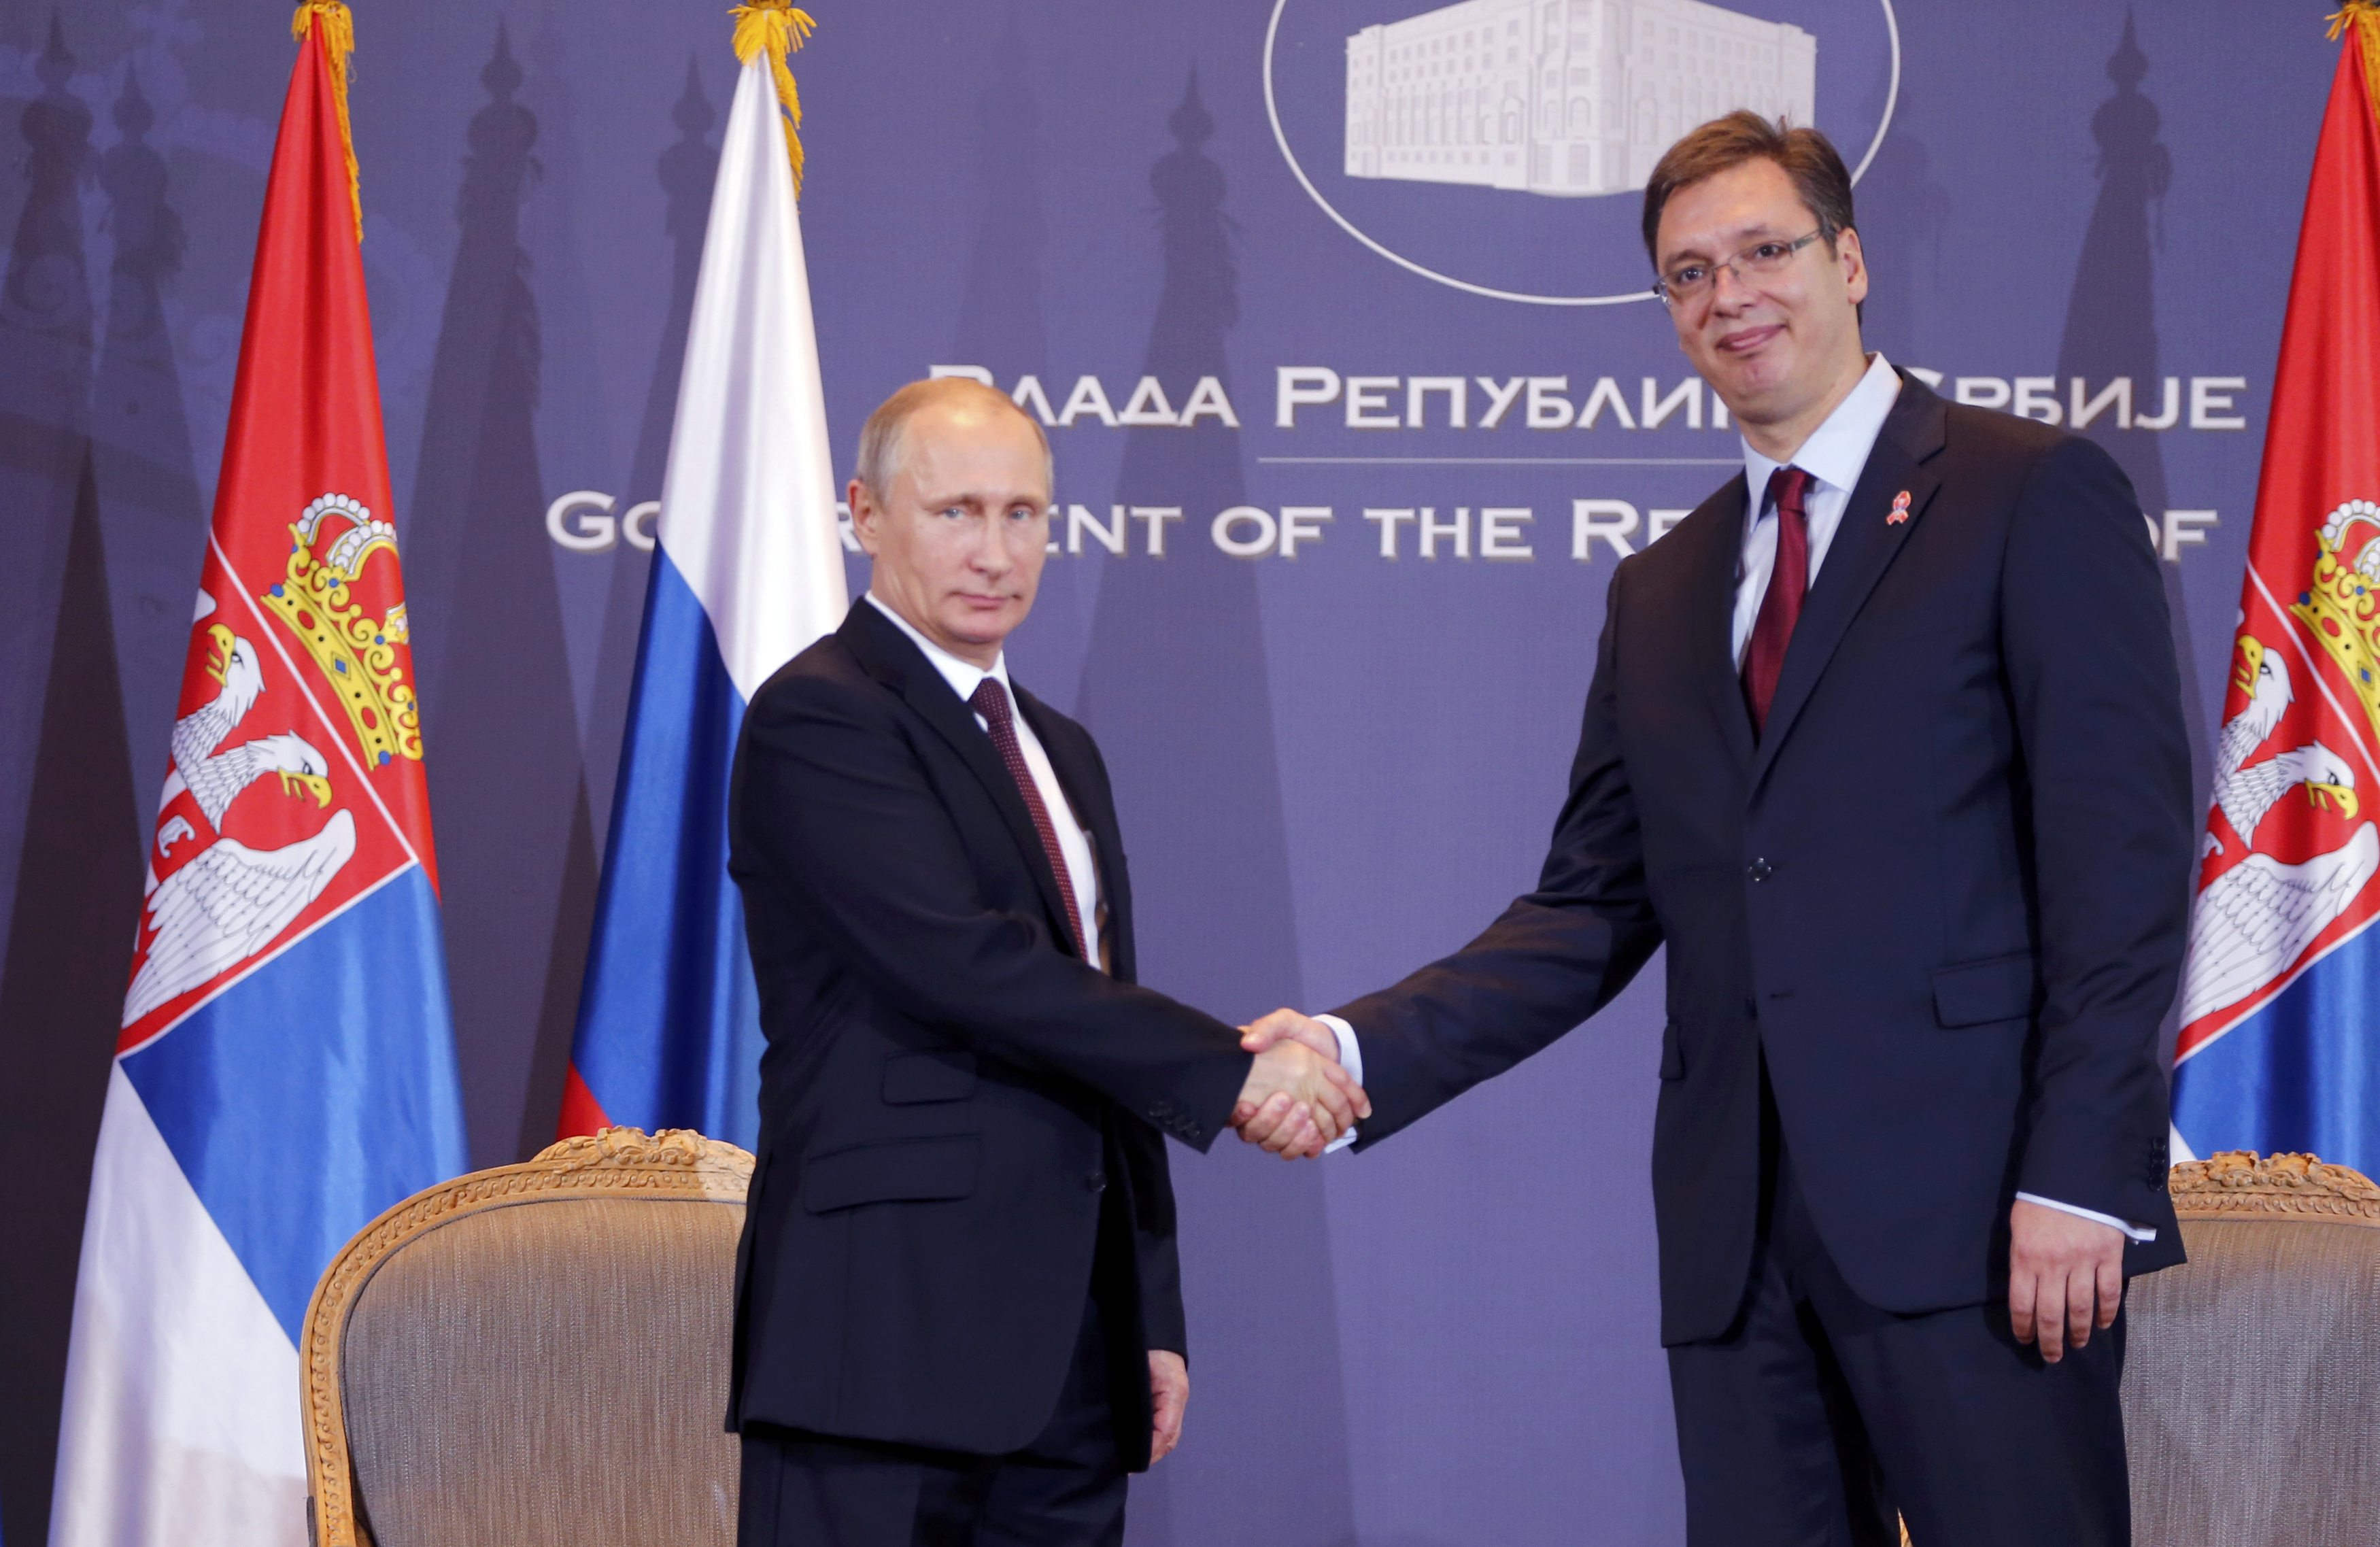 Russian President Vladimir Putin shakes hands with Serbian Prime Minister Aleksandar Vucic (R) at the government headquarters in Belgrade October 16, 2014. Putin is guest of honor at a military parade on Thursday to mark 70 years since the city's liberation by the Red Army, a visit loaded with symbolism as Serbia walks a tightrope between the Europe it wants to join and a big-power ally it cannot leave behind. REUTERS/Marko Djurica (SERBIA - Tags: POLITICS)